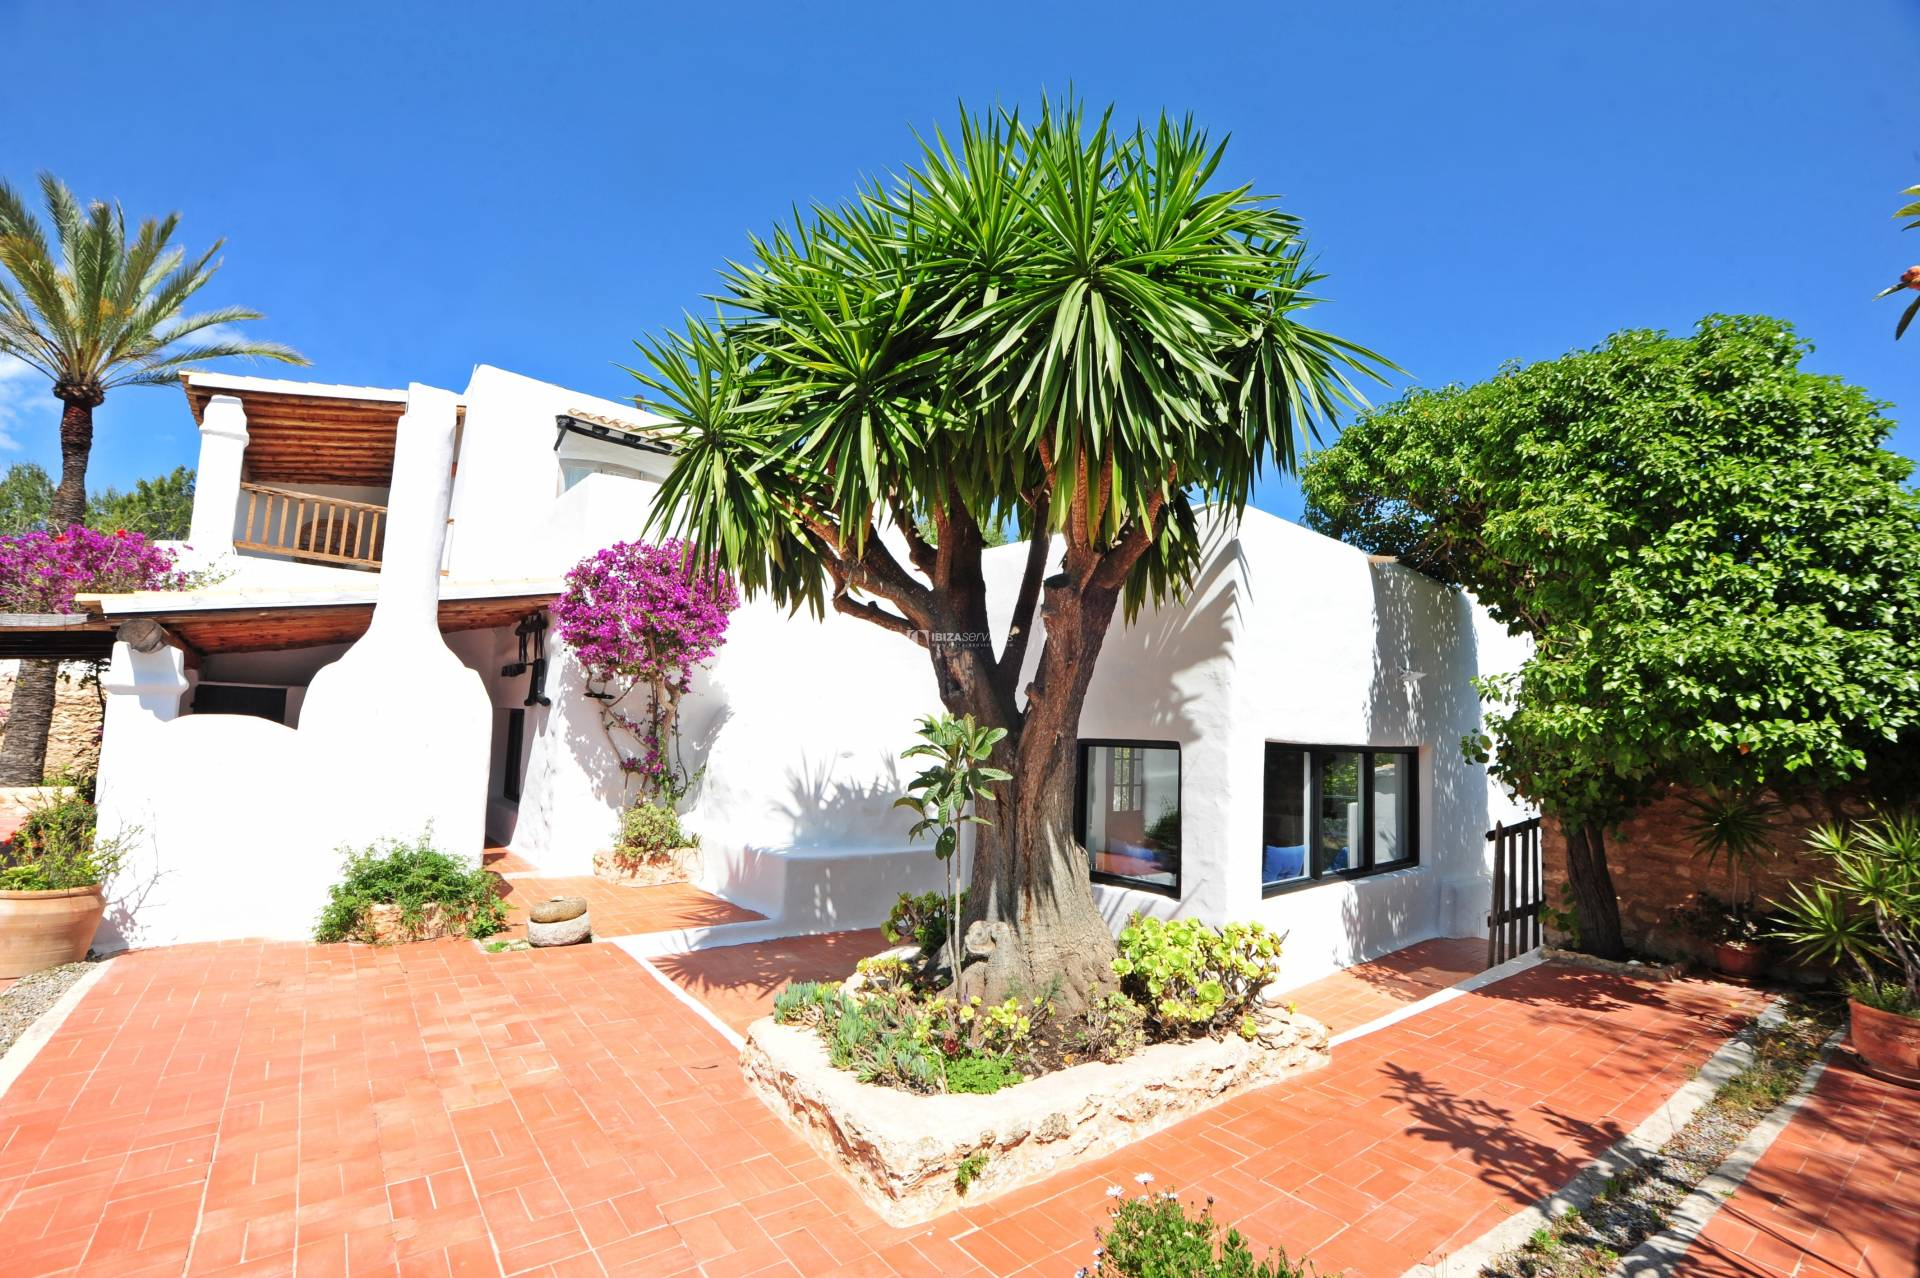 6 Bedrooms Villa in San Rafael to rent perspectiva 5